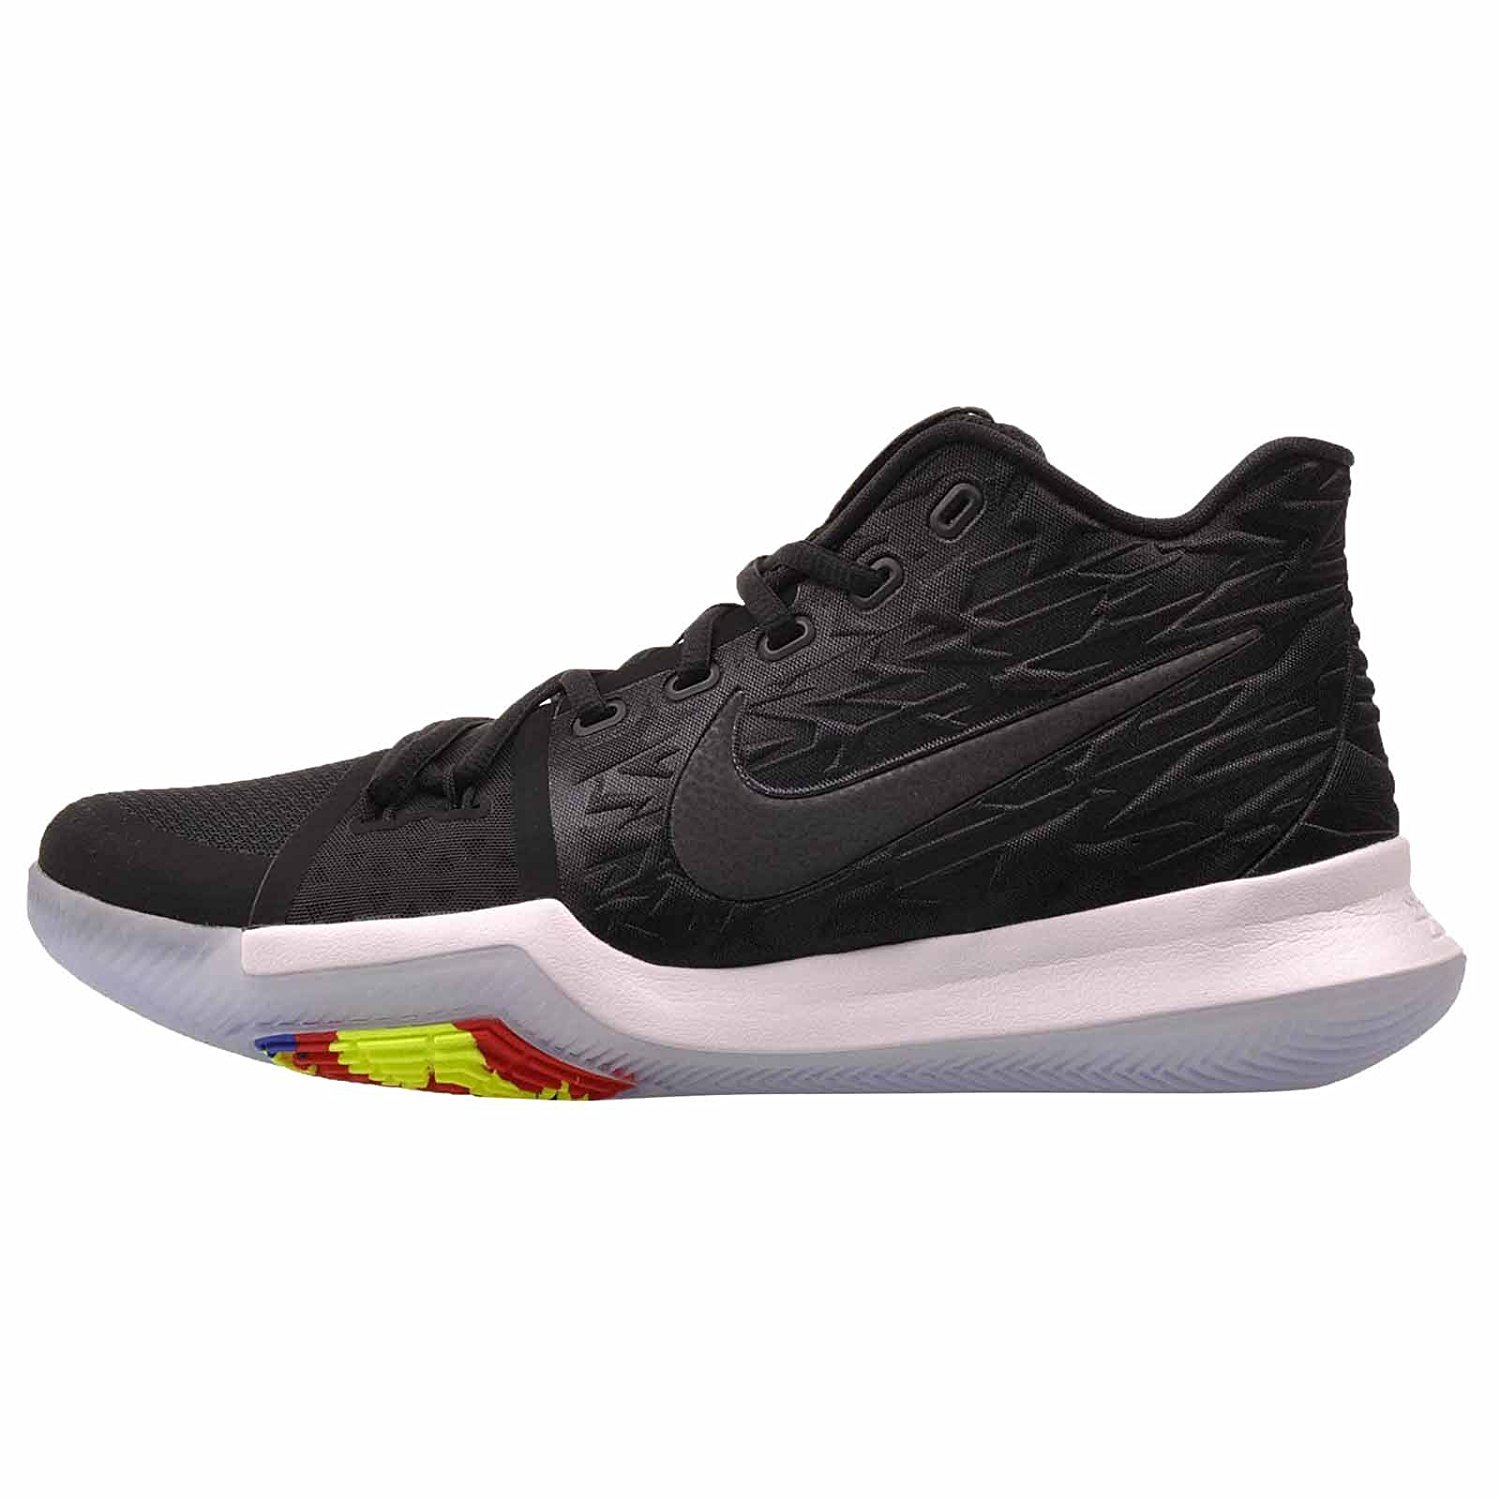 best website 24858 94596 Nike Mens Kyrie 3 Basketball Shoes, (Black/White, 11)